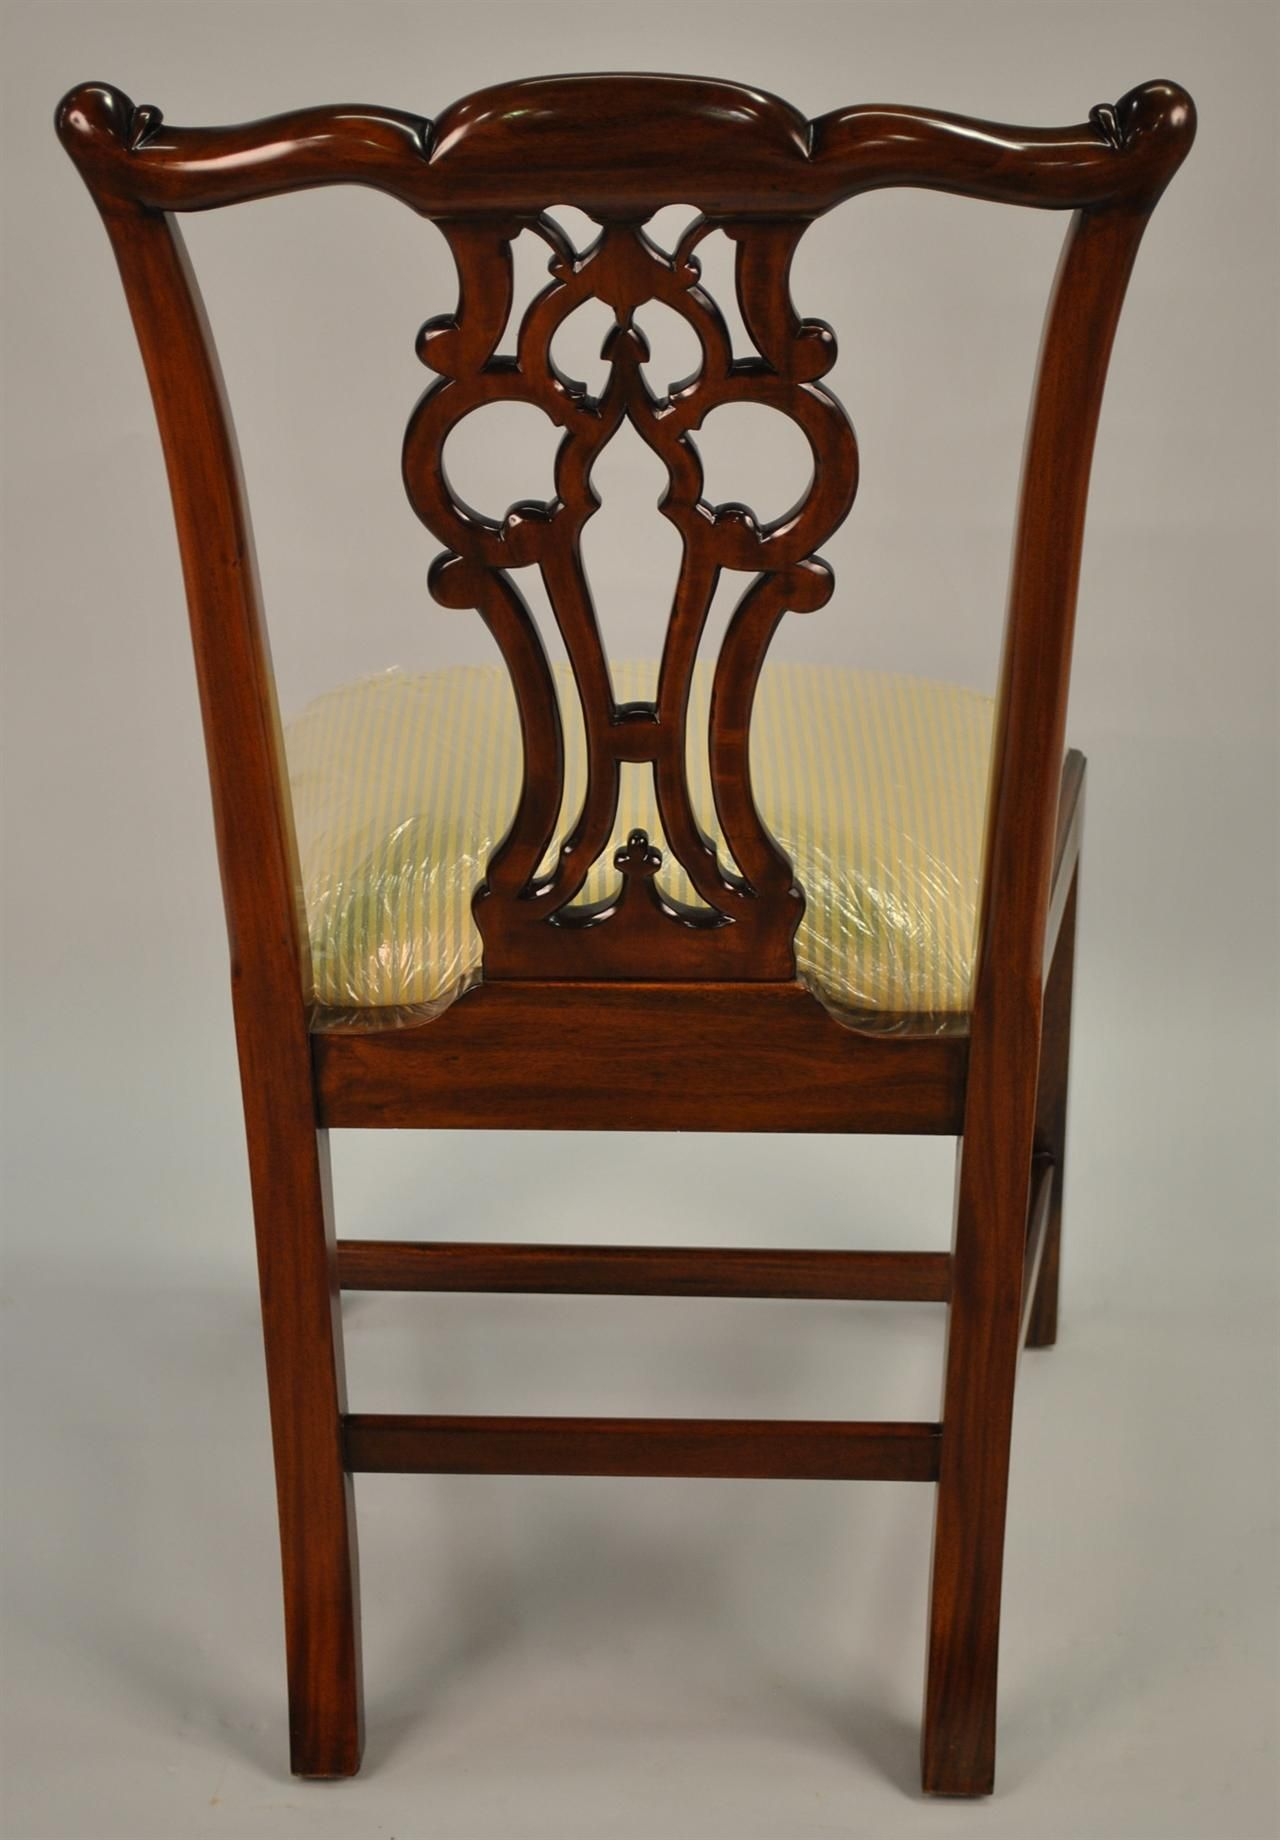 Wooden dining chairs with cushion - Antique Discount Wood Dining Chairs Mahogany Chippendale Dining Room Chairs Chair